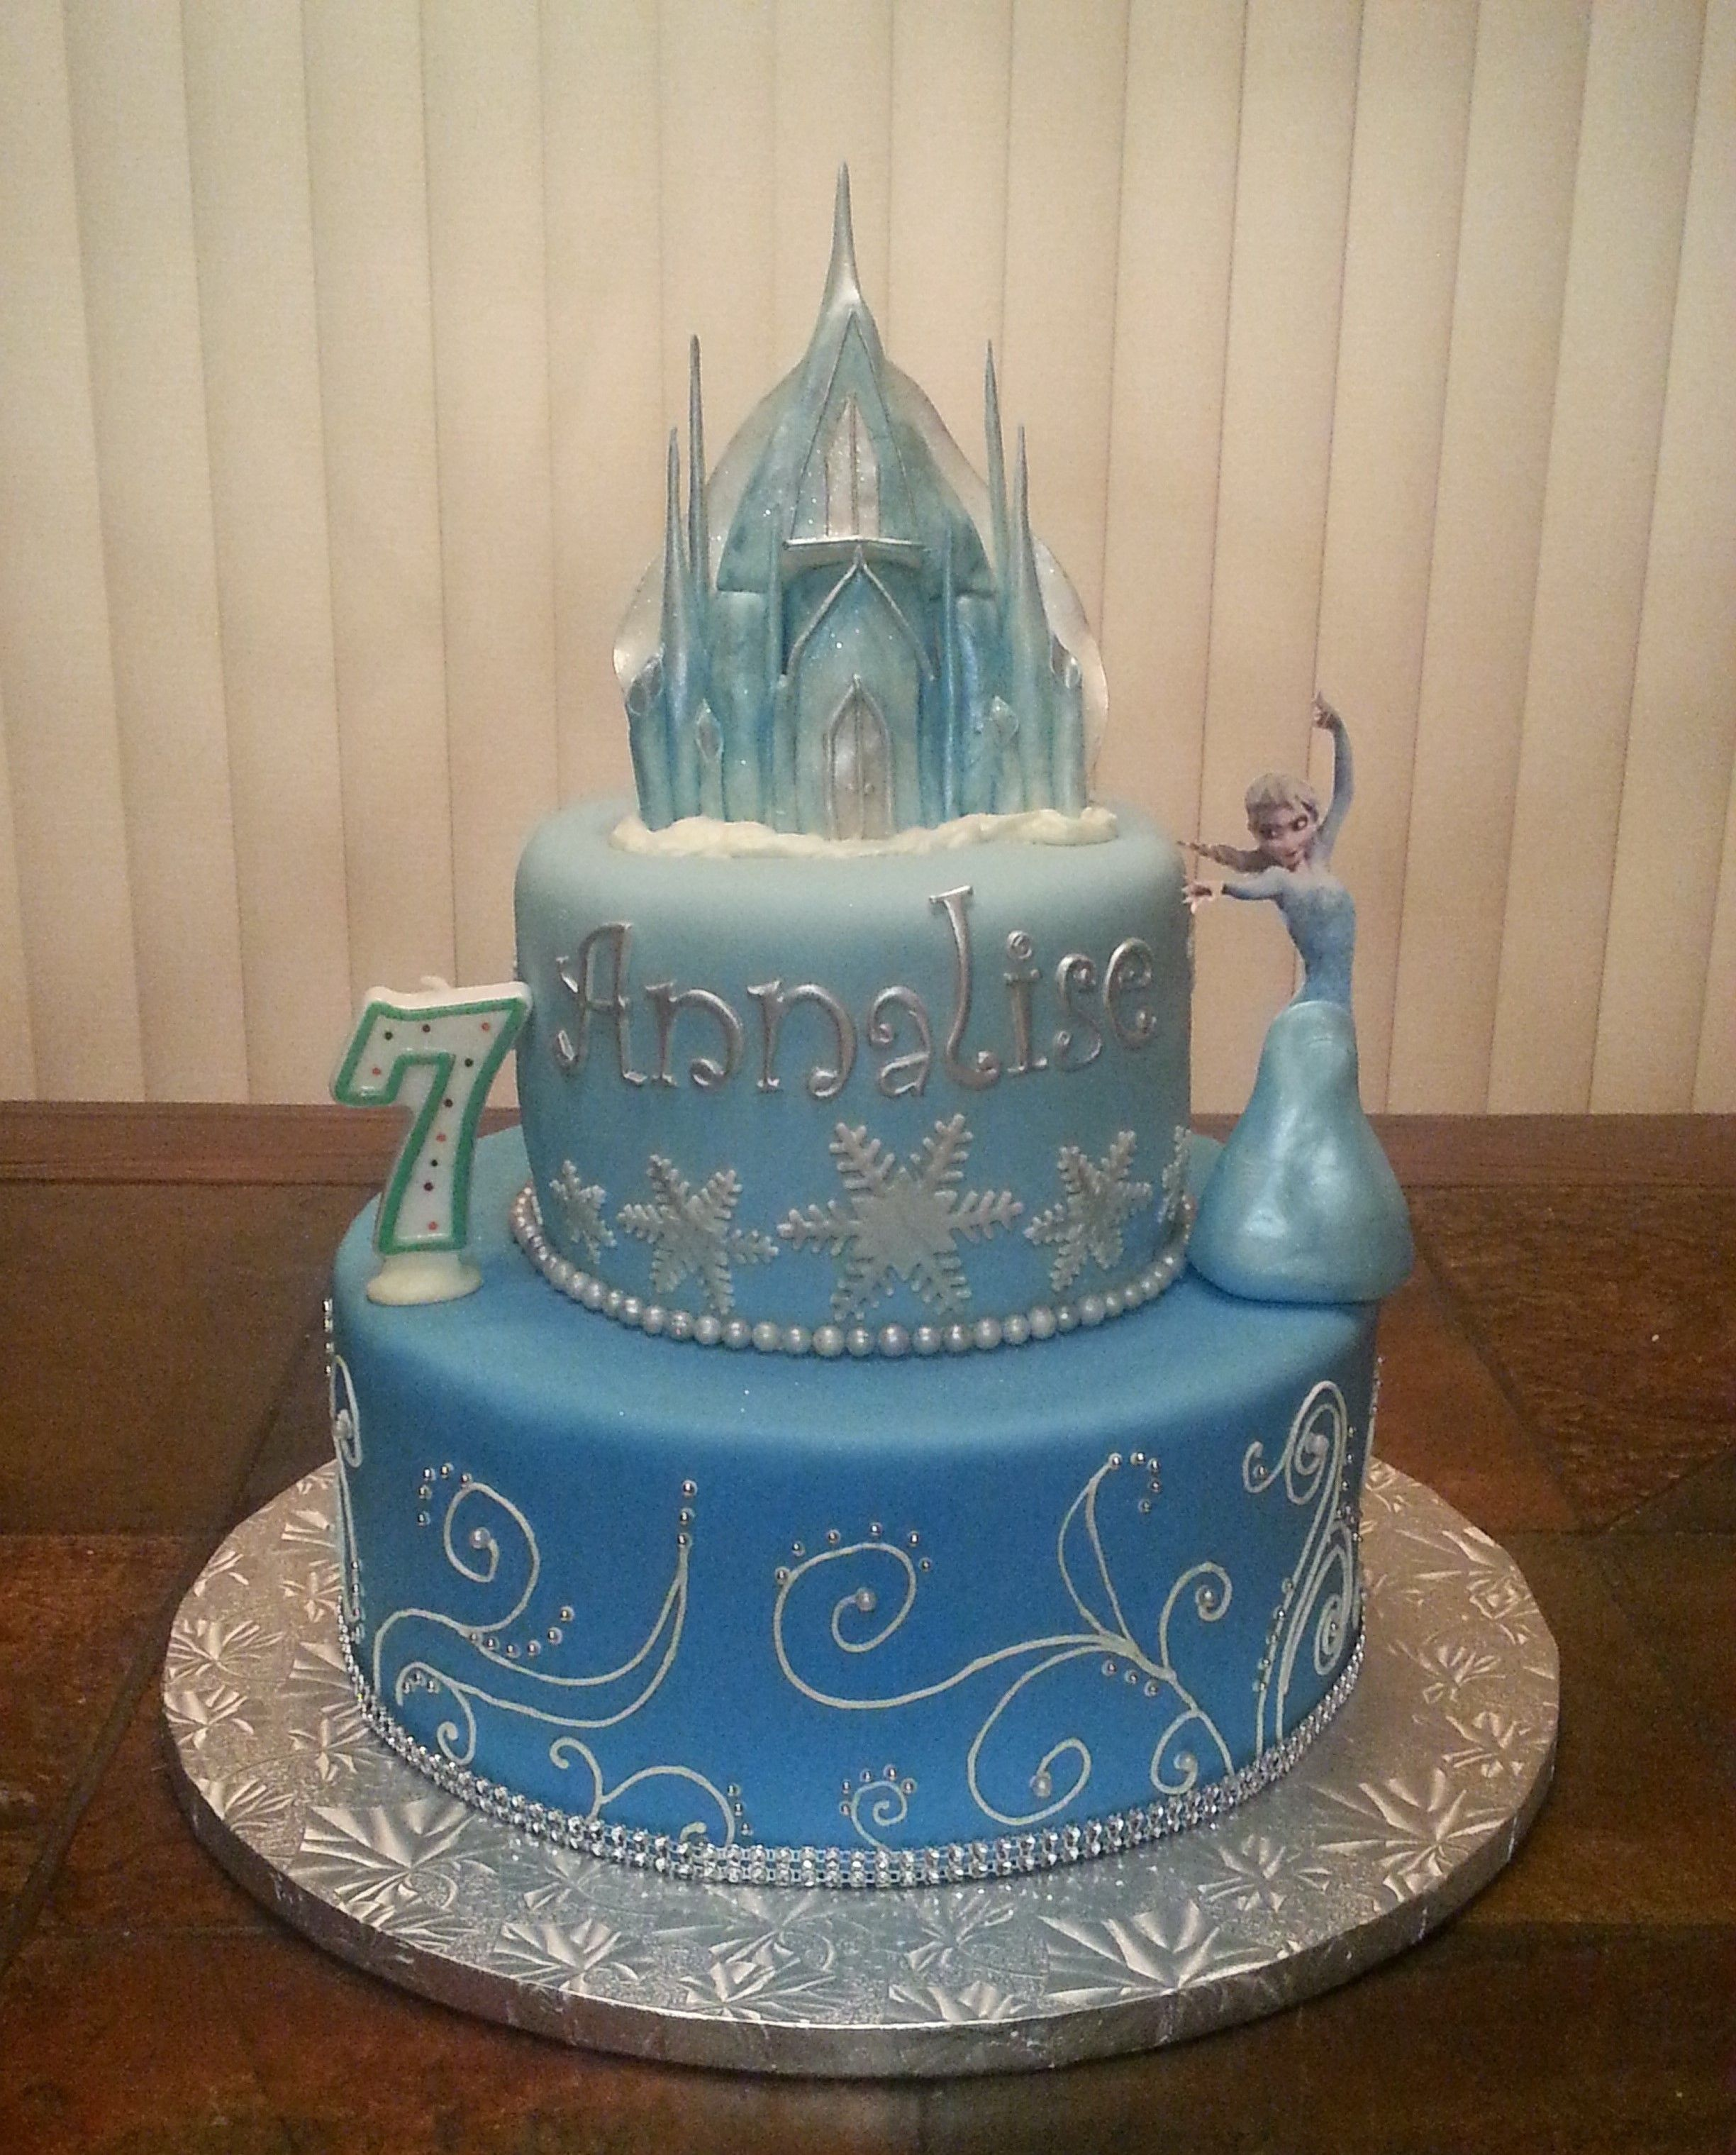 Elsa Cake Decoration Ideas : Frozen Cake with Elsa Frozen Pinterest Elsa and Cake